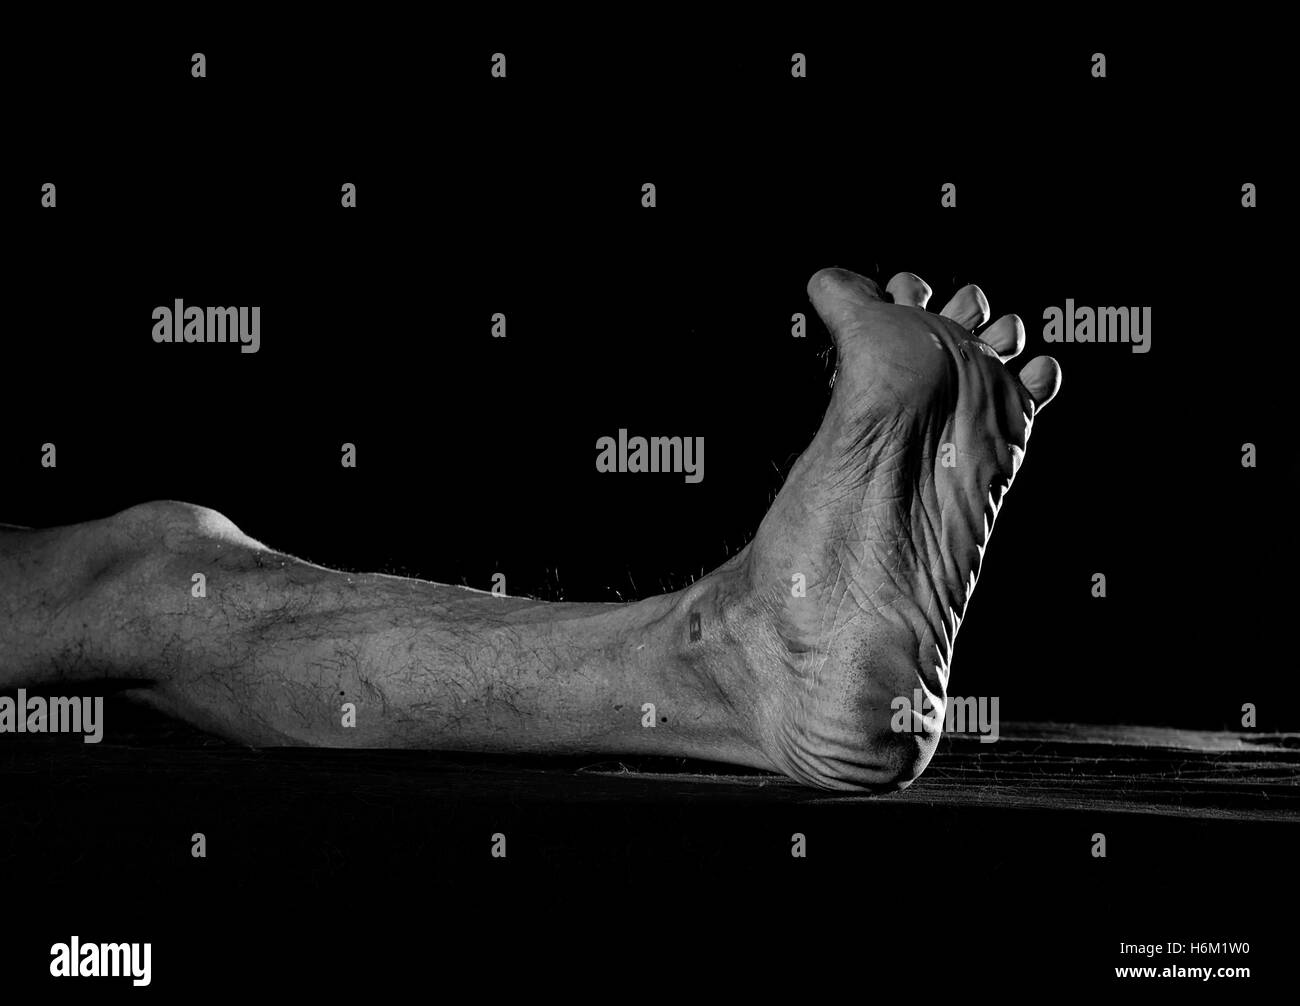 Dirty foot barefooted men against a dark background. - Stock Image